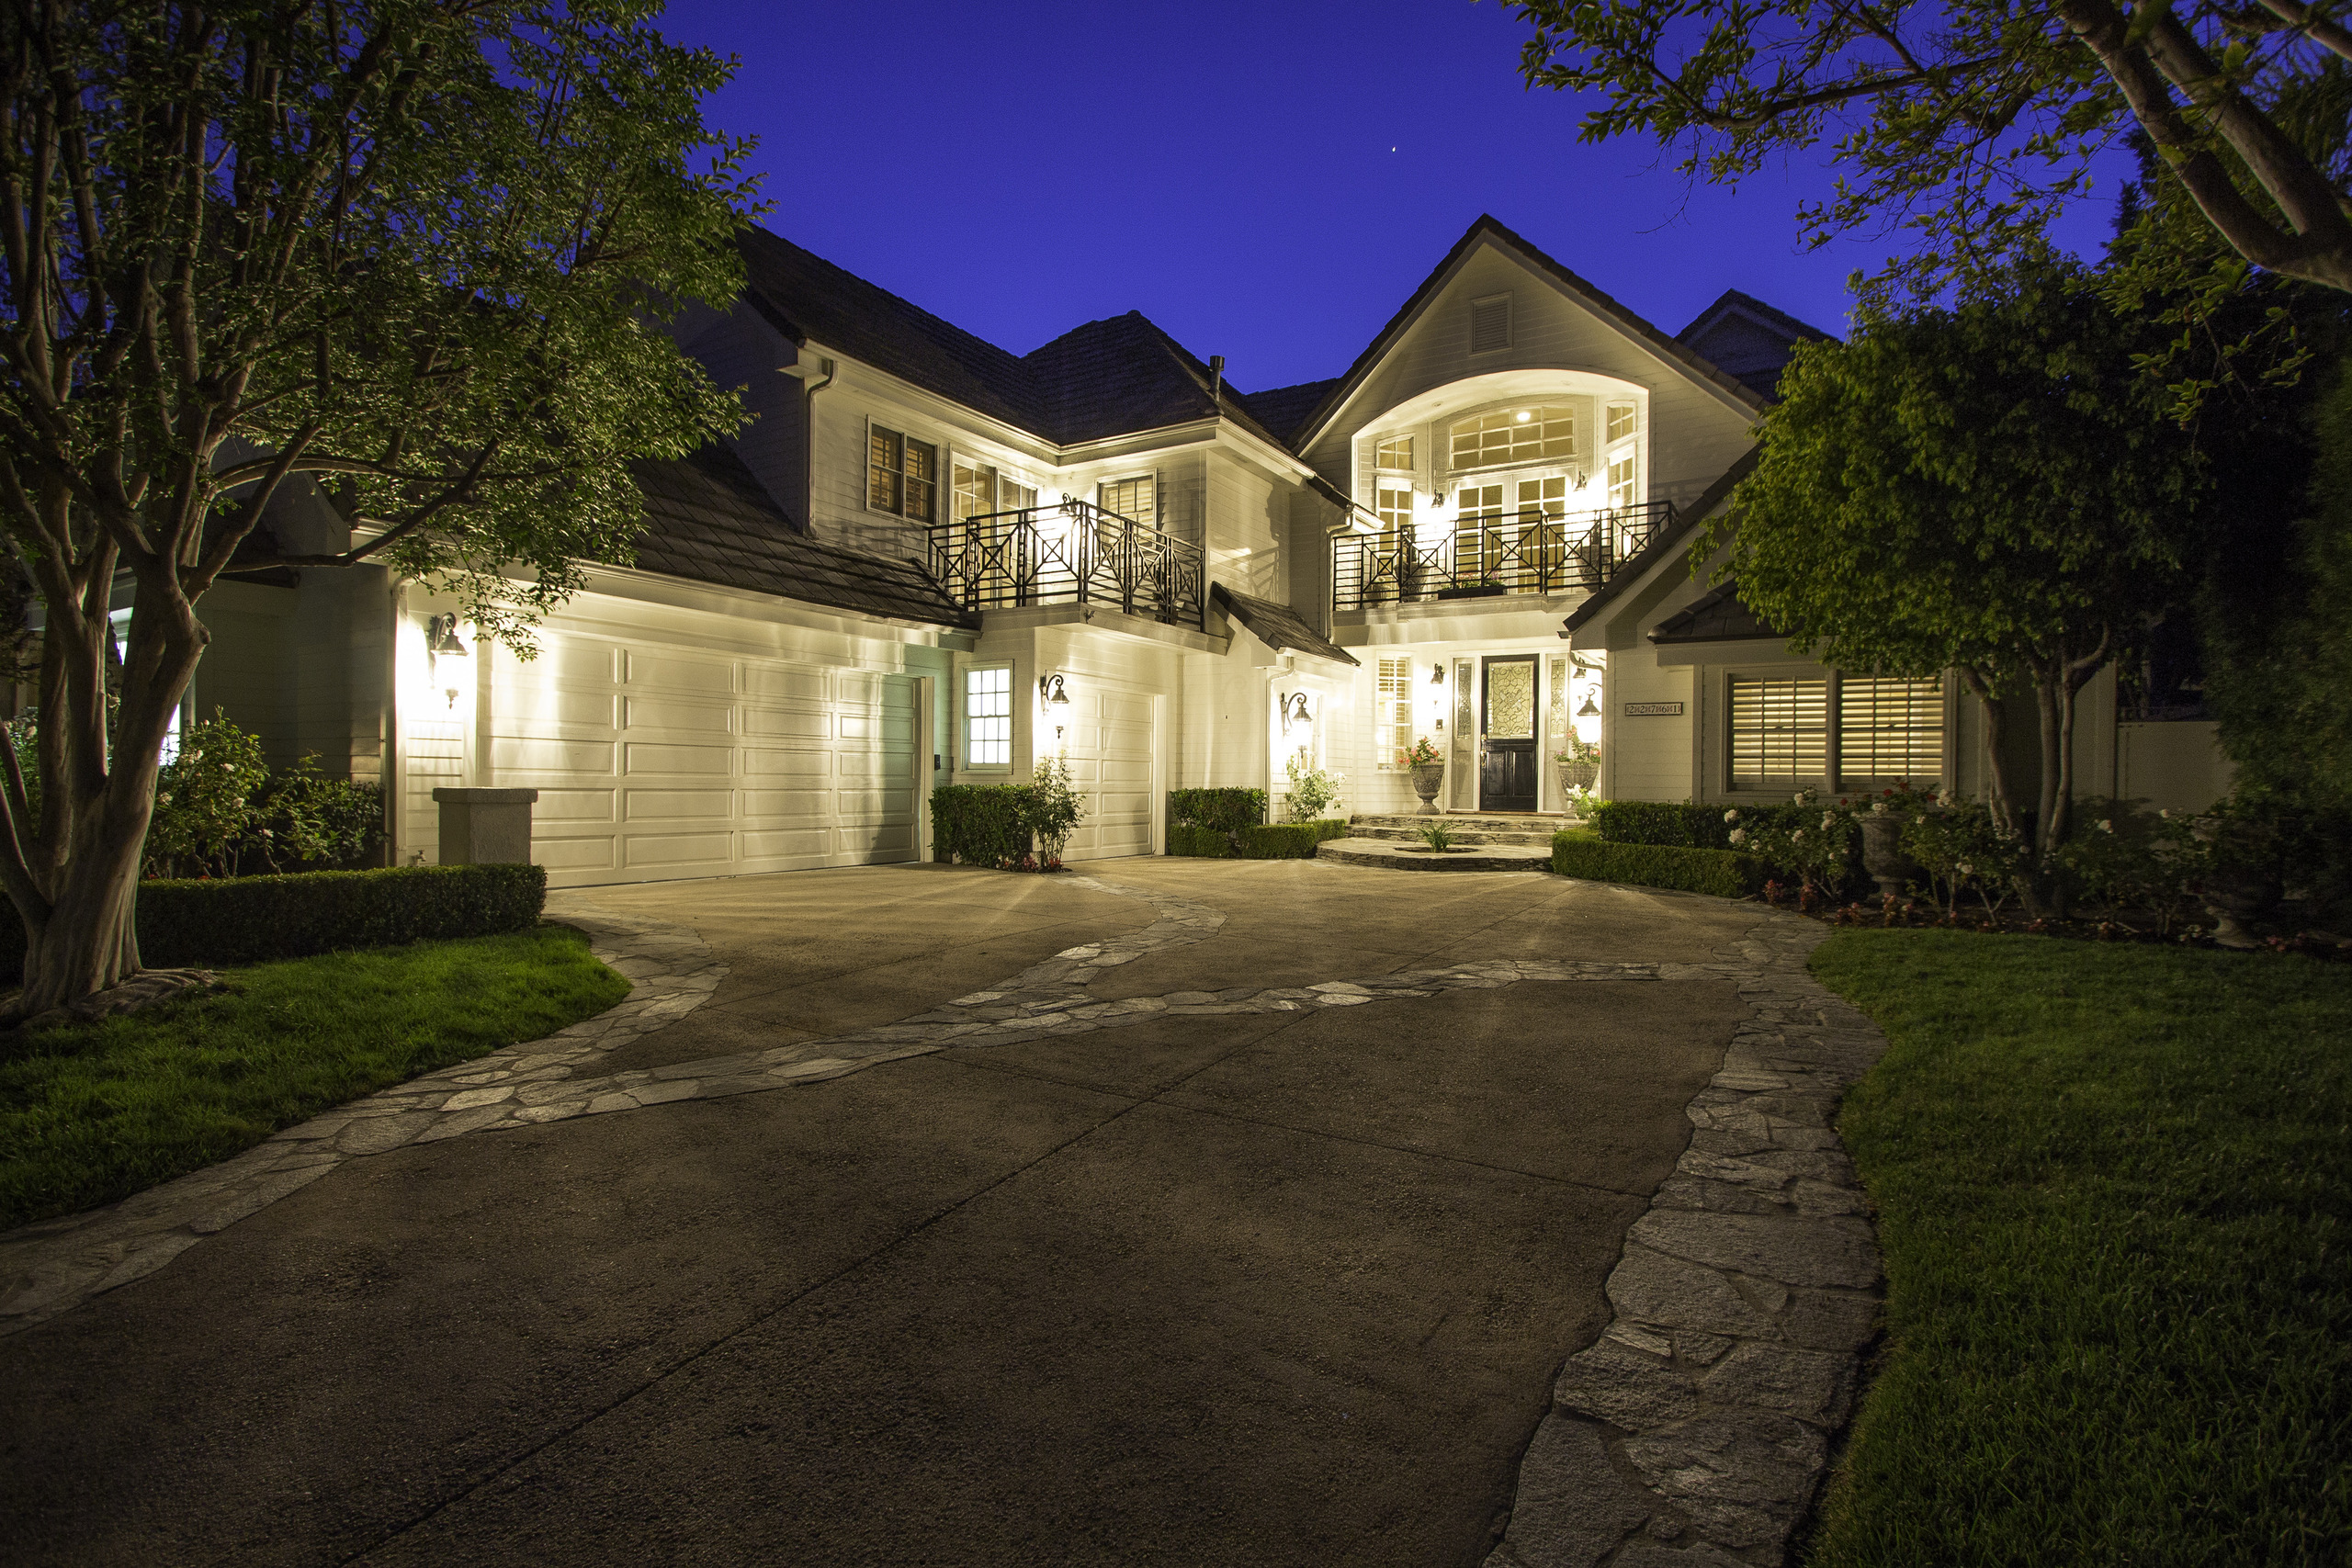 868607-Front_House_Twilight_1